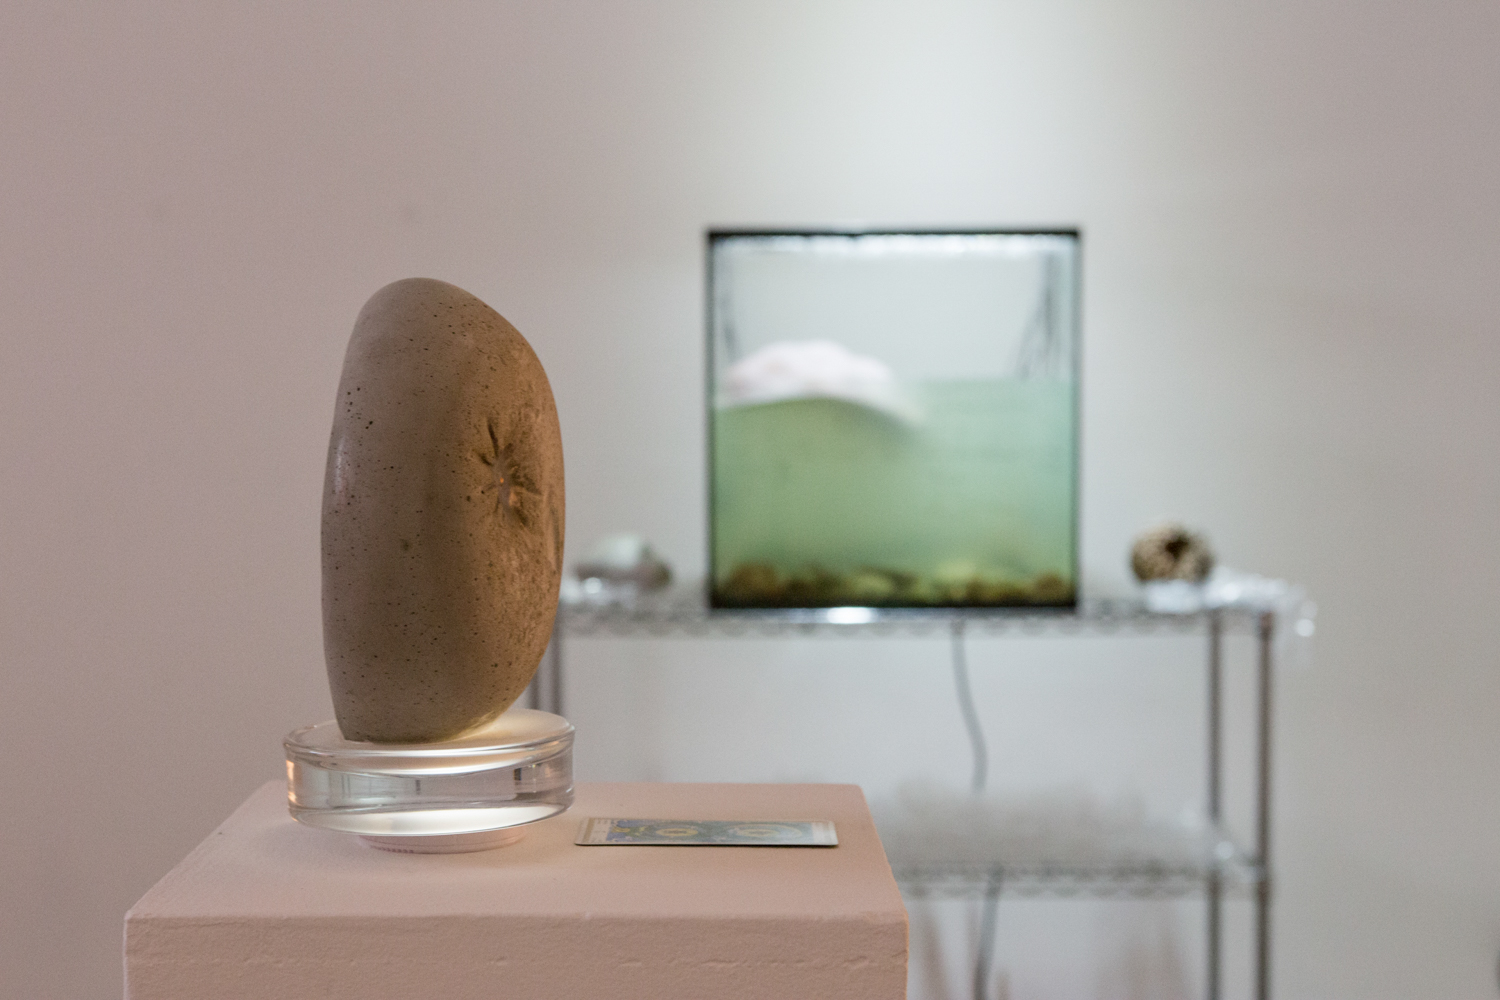 Paul Esposito's solo show sculpture in the foreground, with an aquarium tank in the background.